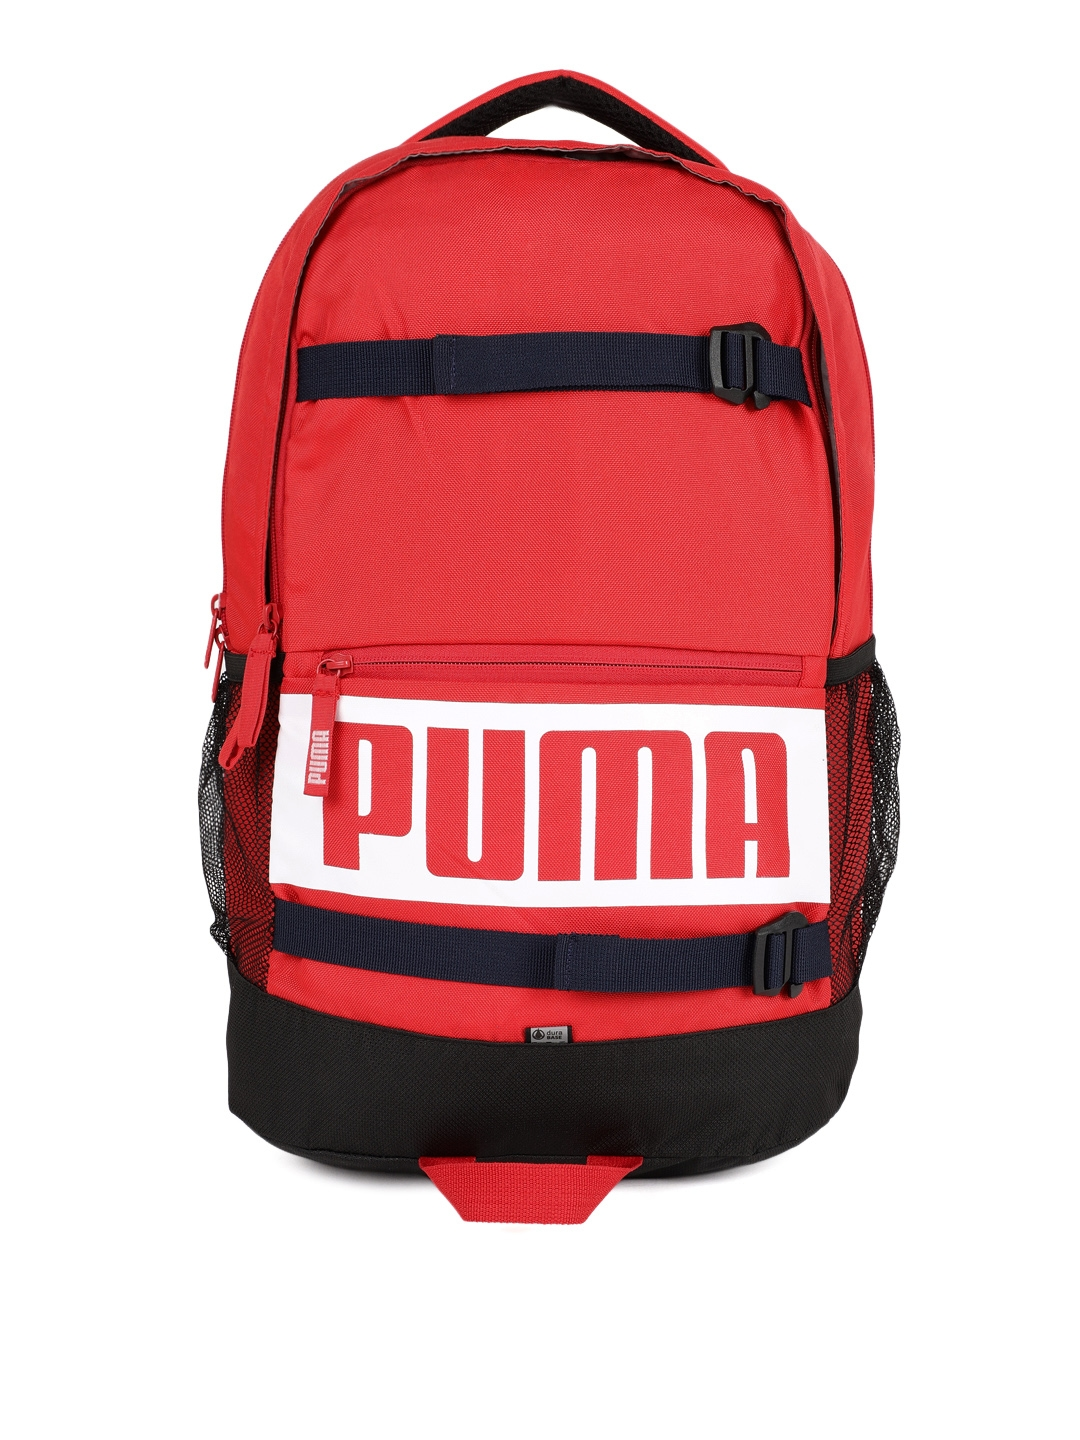 Puma Unisex Red Deck Laptop Backpack